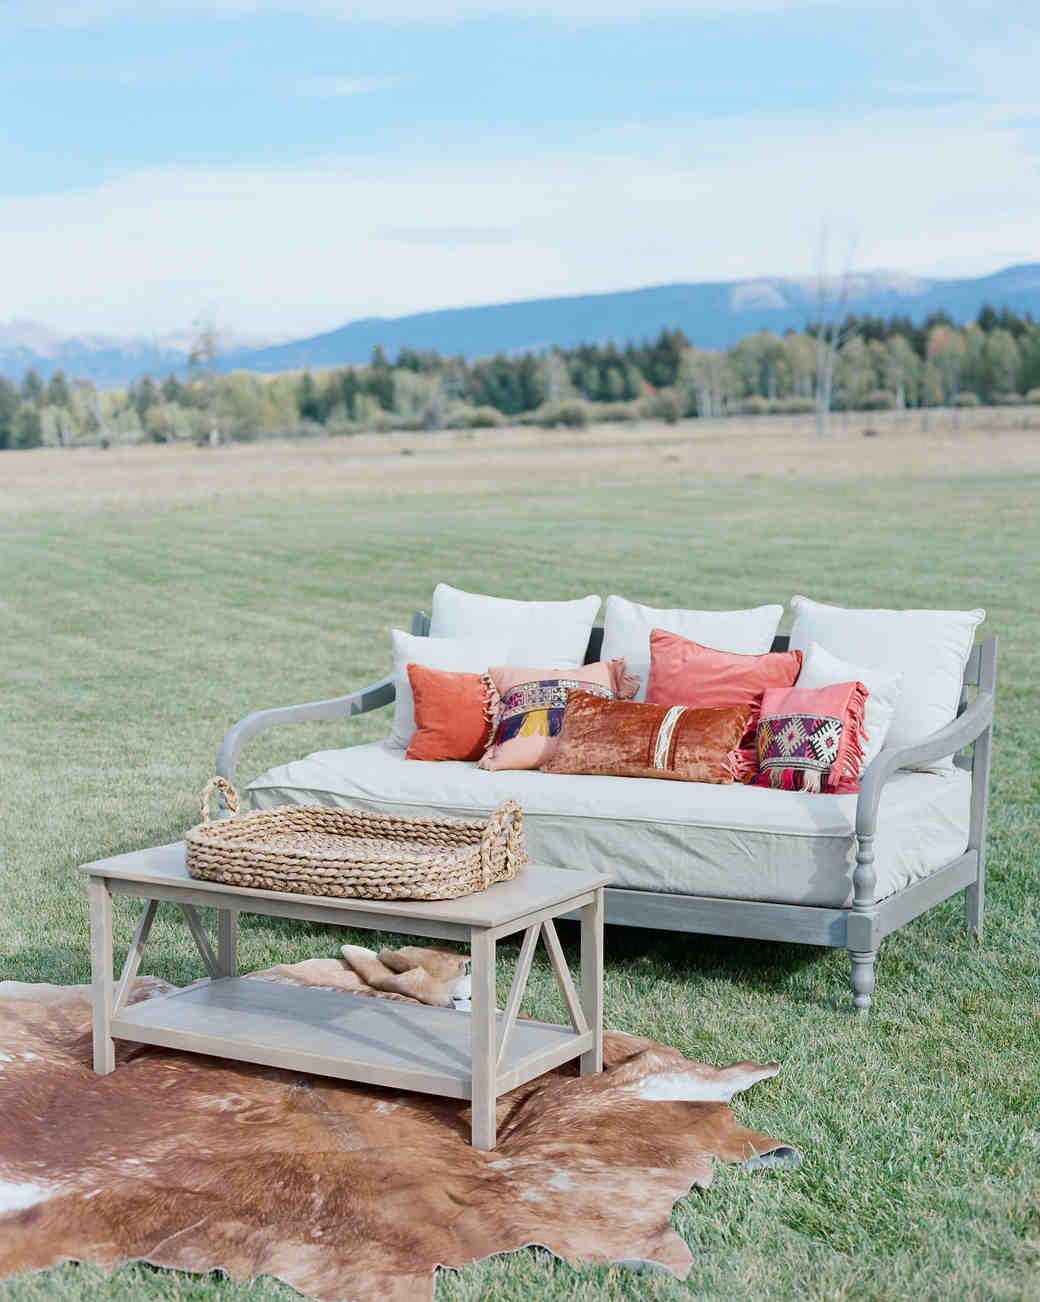 Wedding Lounge Ideas Your Guests Can Cozy Up To | Martha Stewart Weddings